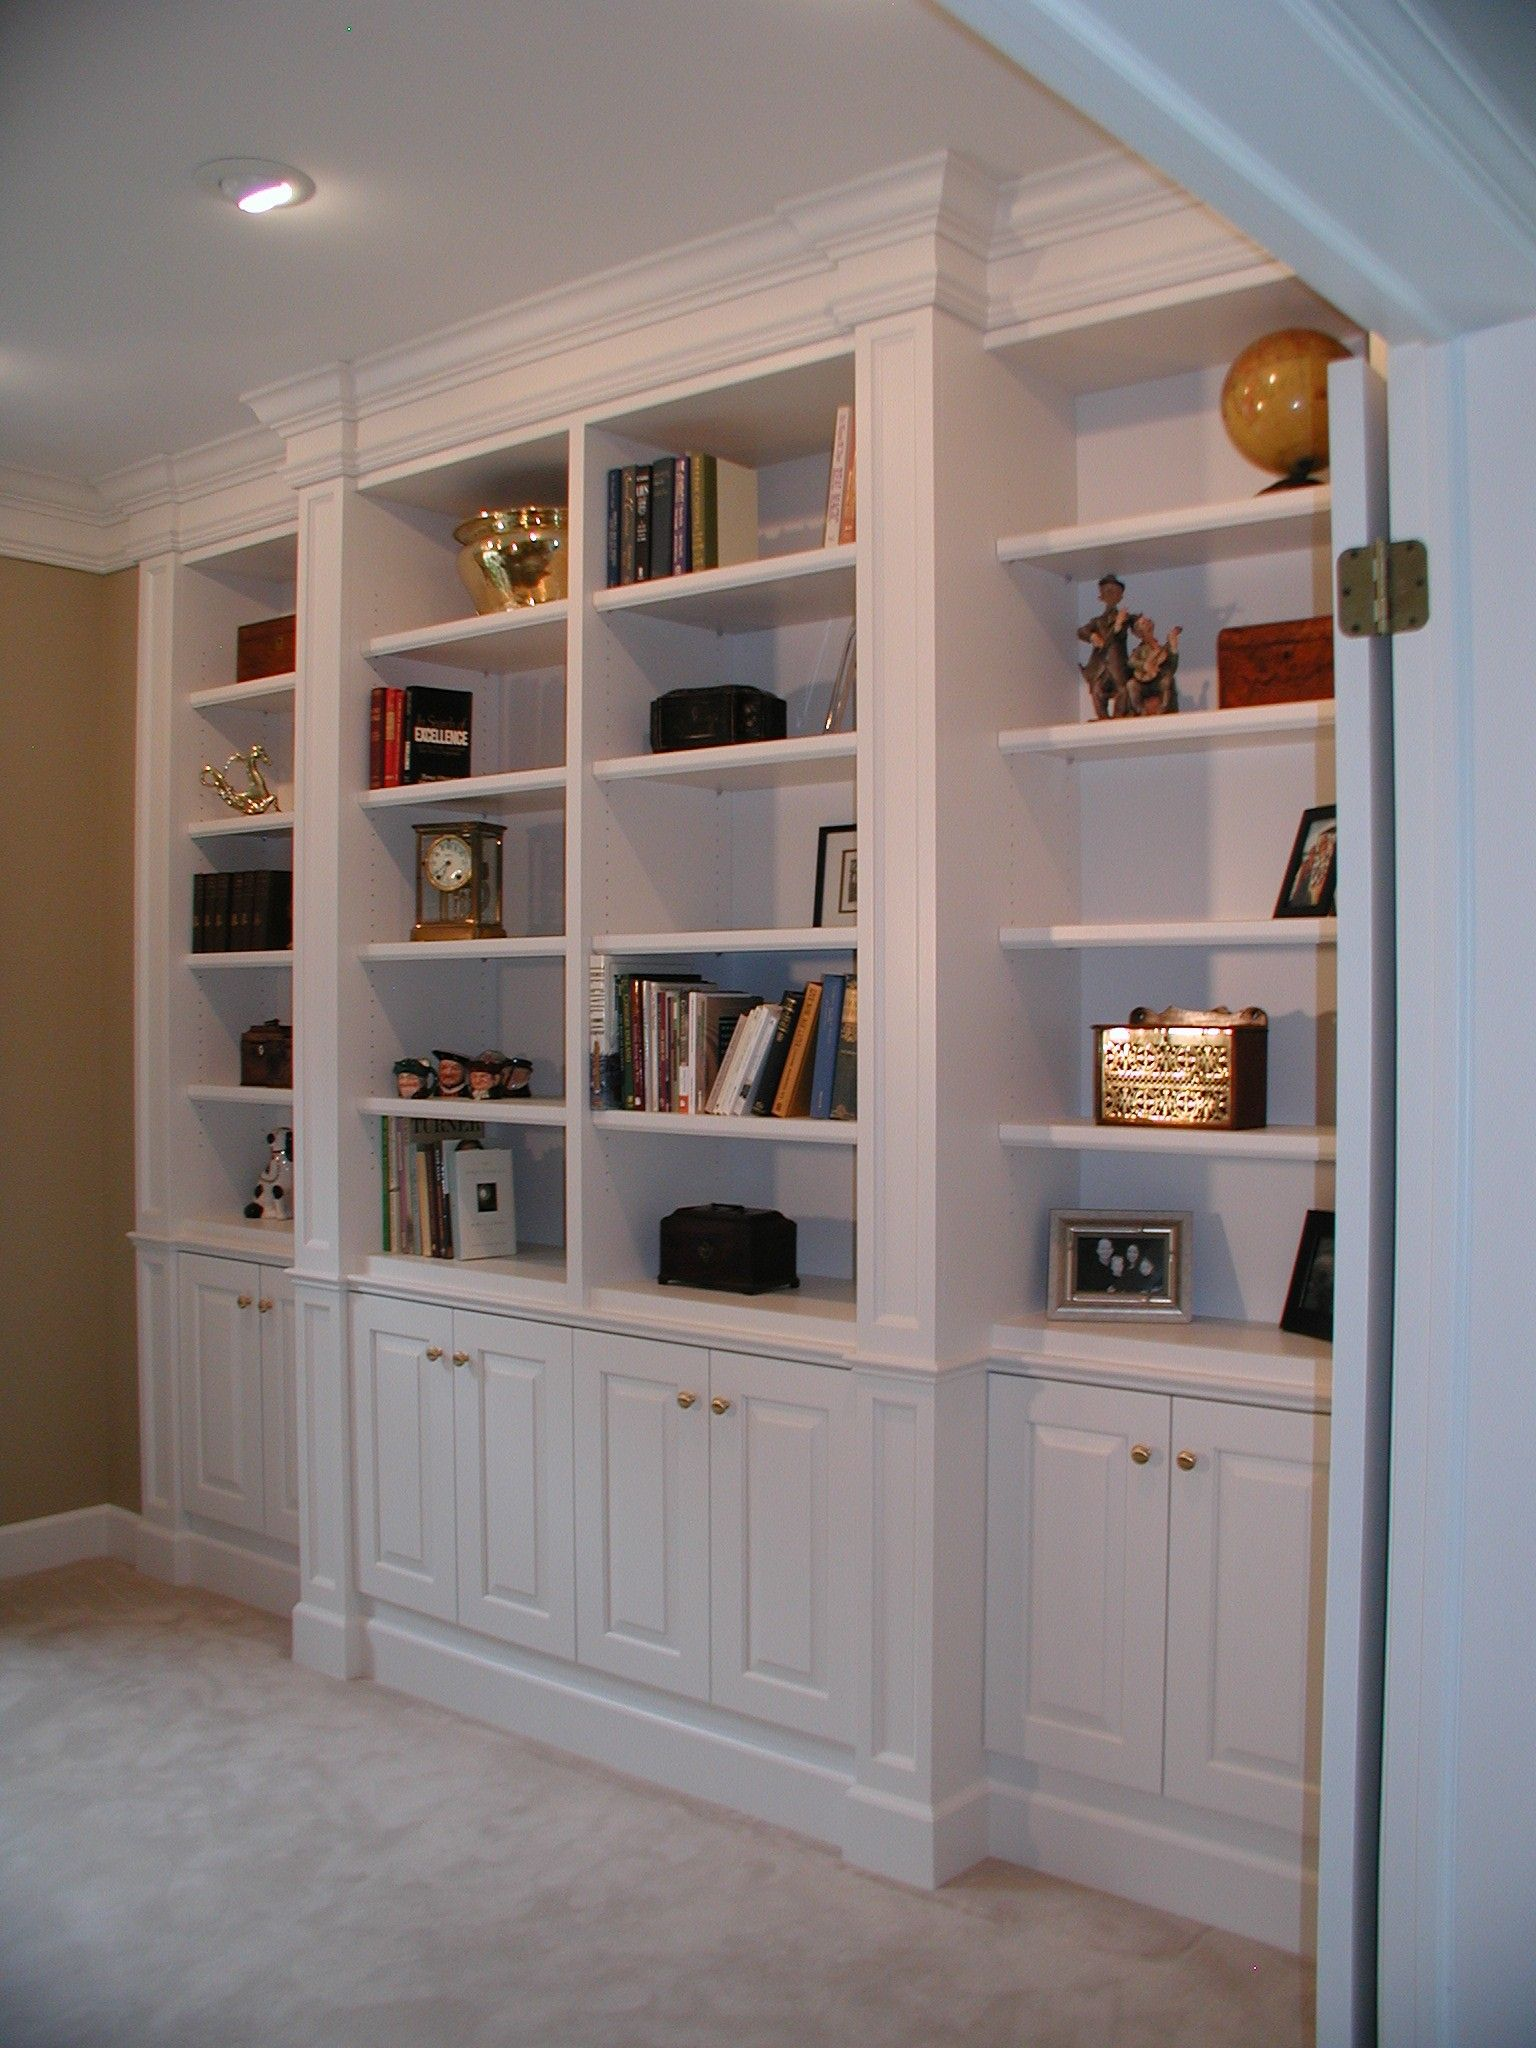 Built-In Bookcase Around Fireplace Plans